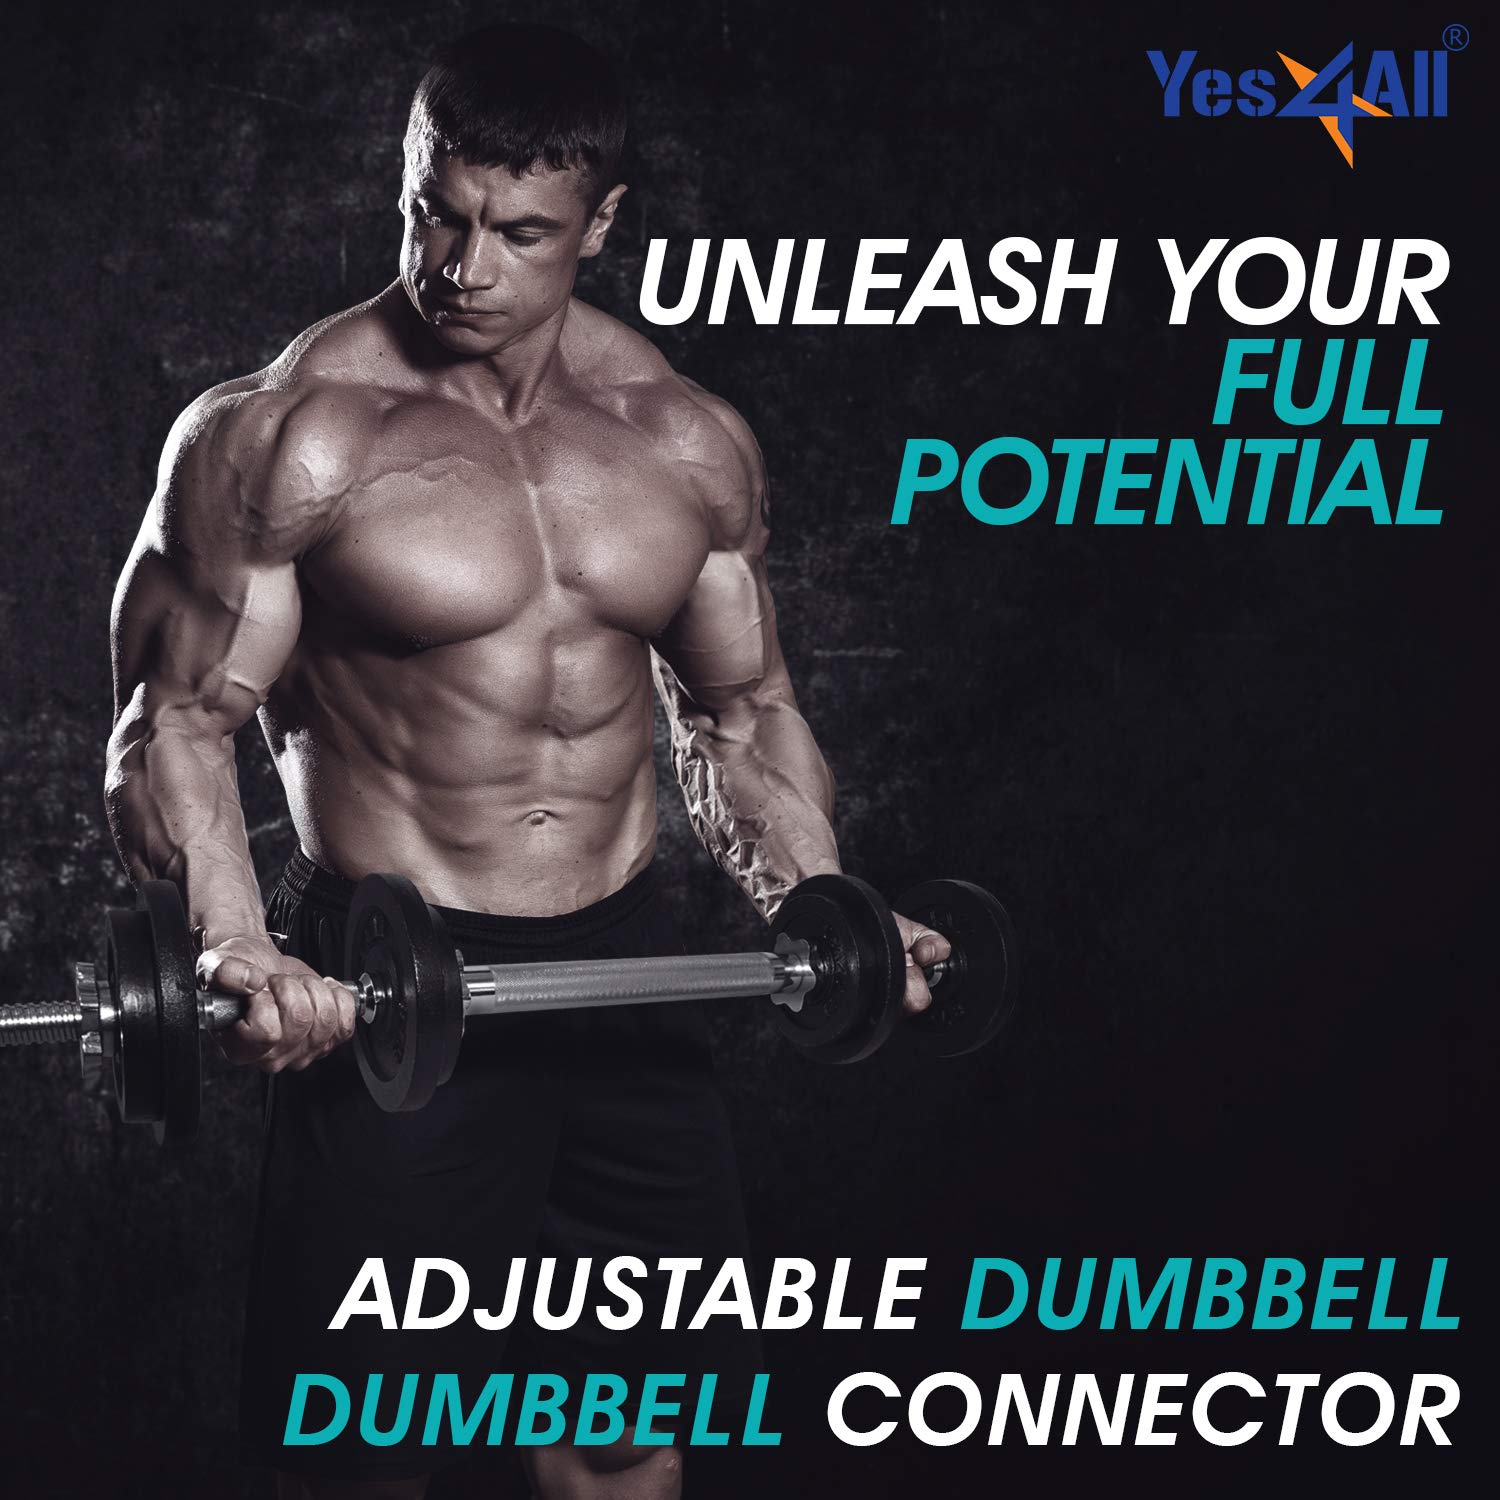 Yes4All Adjustable Dumbbell Set with Dumbbell Connector – 40 lbs Dumbbell Weights (Pair) by Yes4All (Image #5)